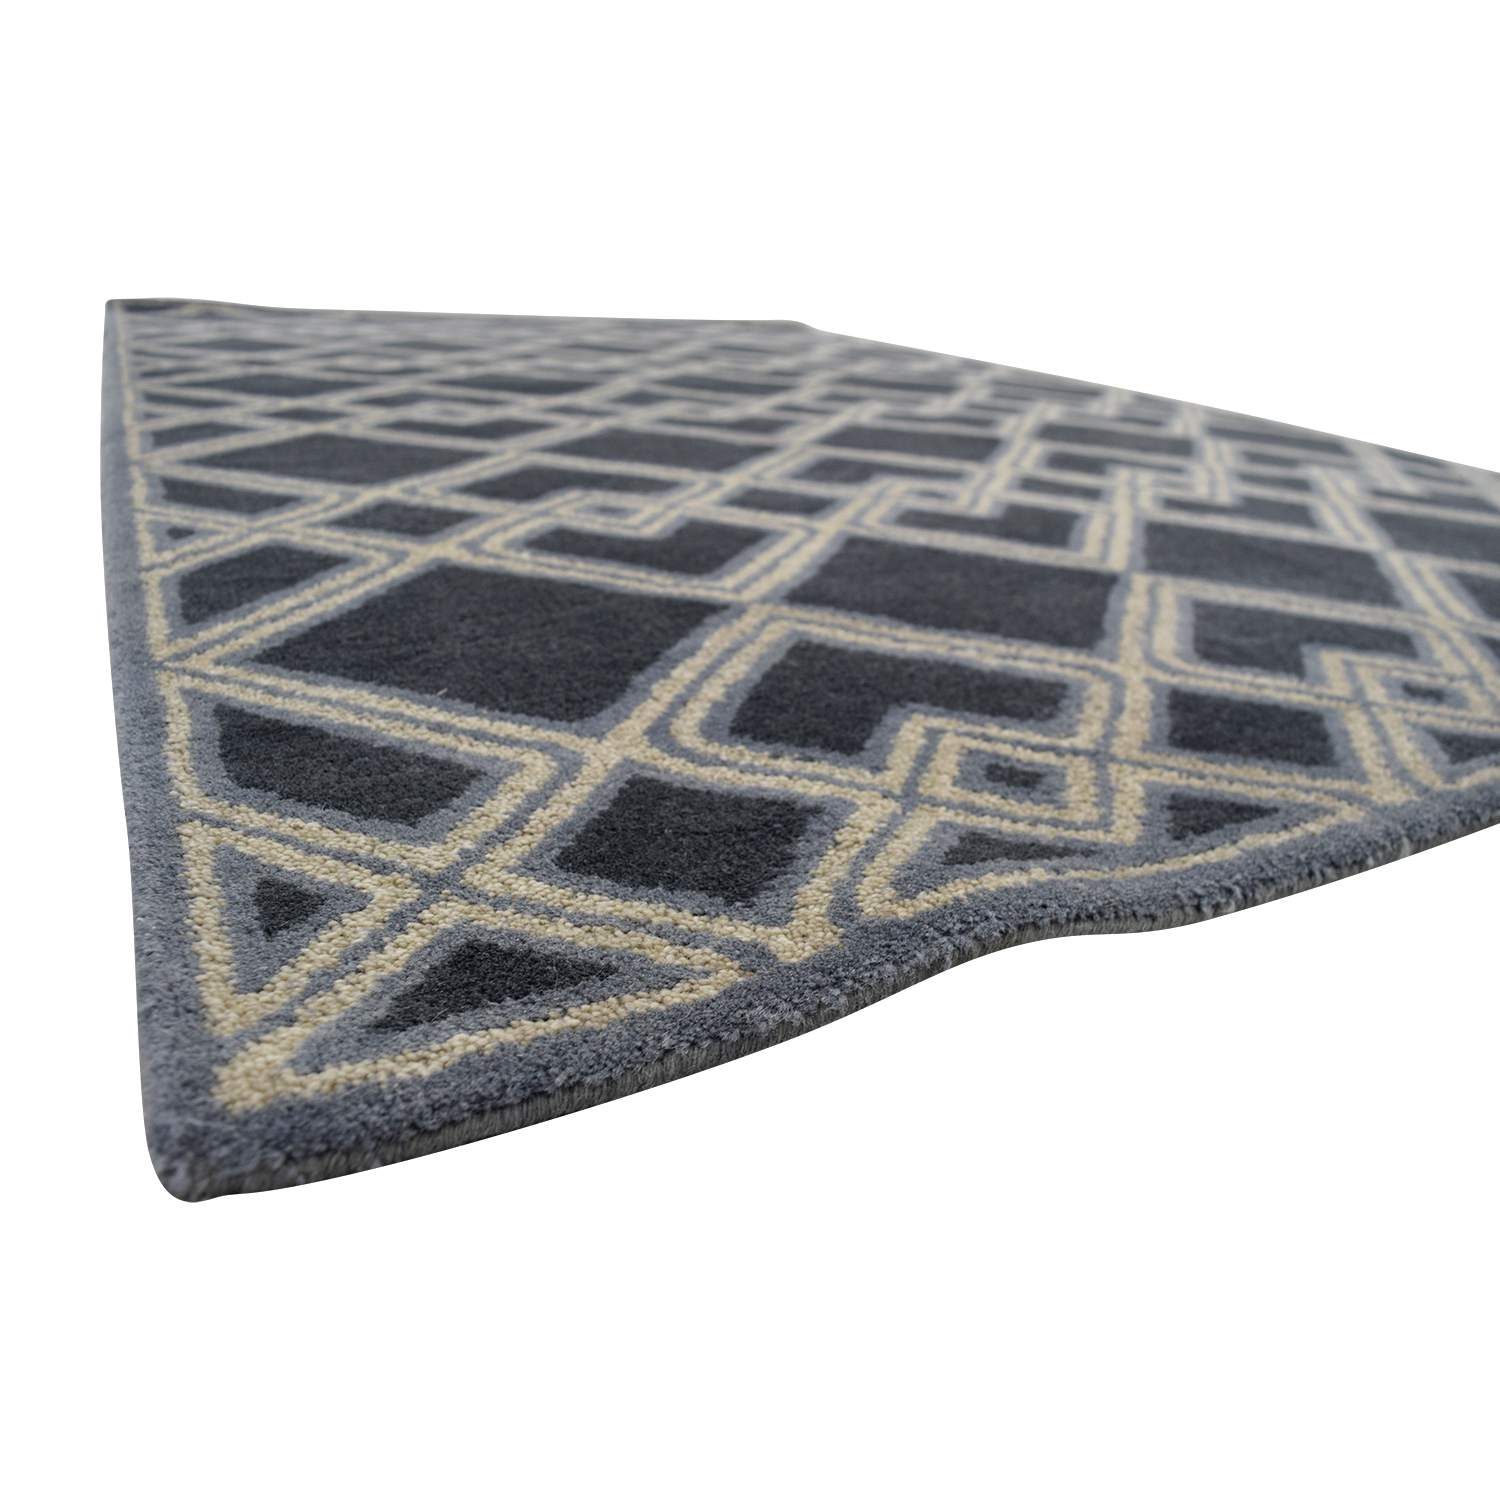 Obeetee Obeetee 5 X 8 Blue Hand Tufted Wool Rug nyc